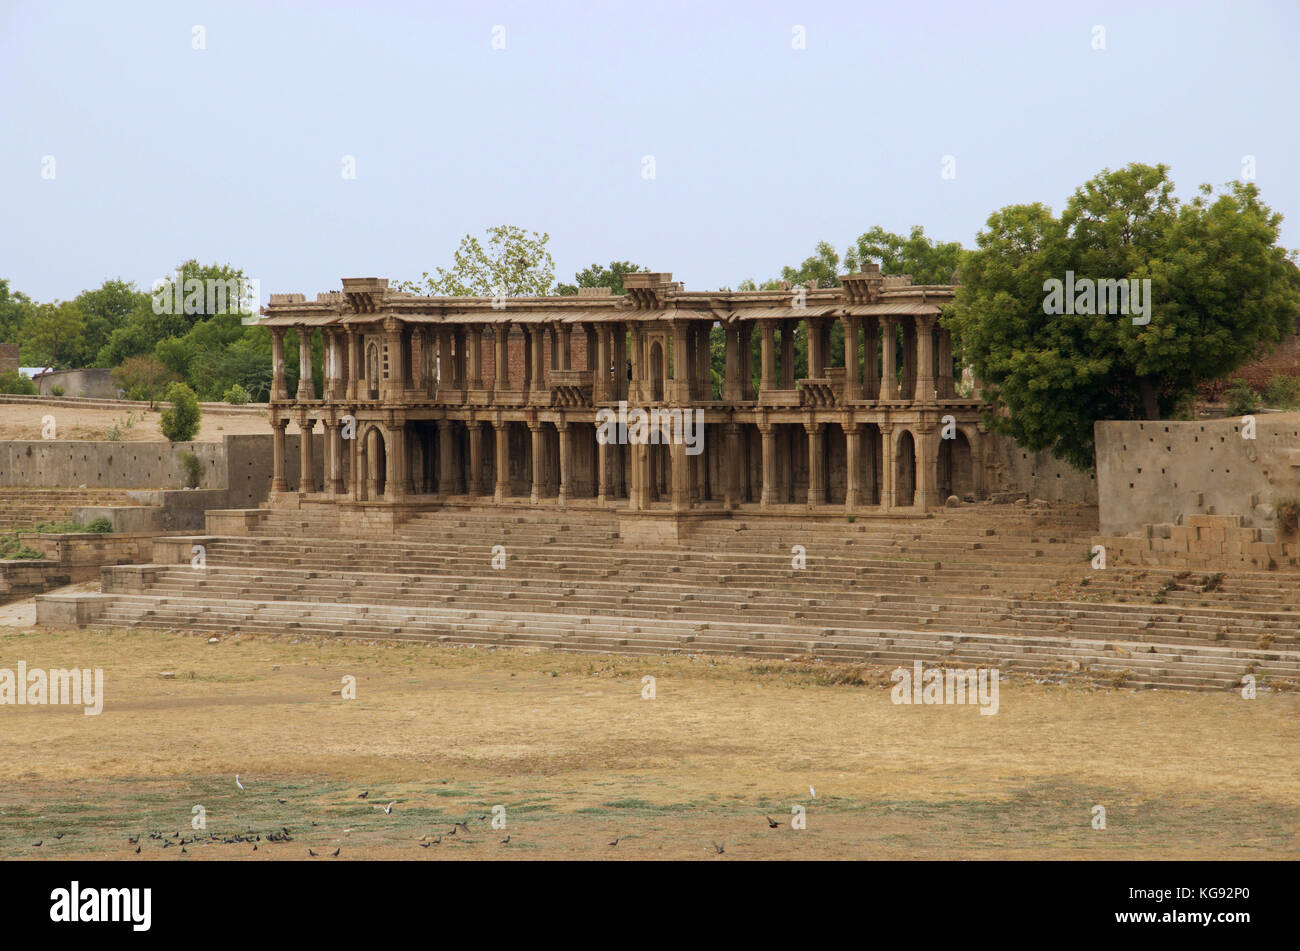 Partial view of Sarkhej Roza, mosque and tomb complex. Makarba, Ahmedabad, Gujarat, India - Stock Image